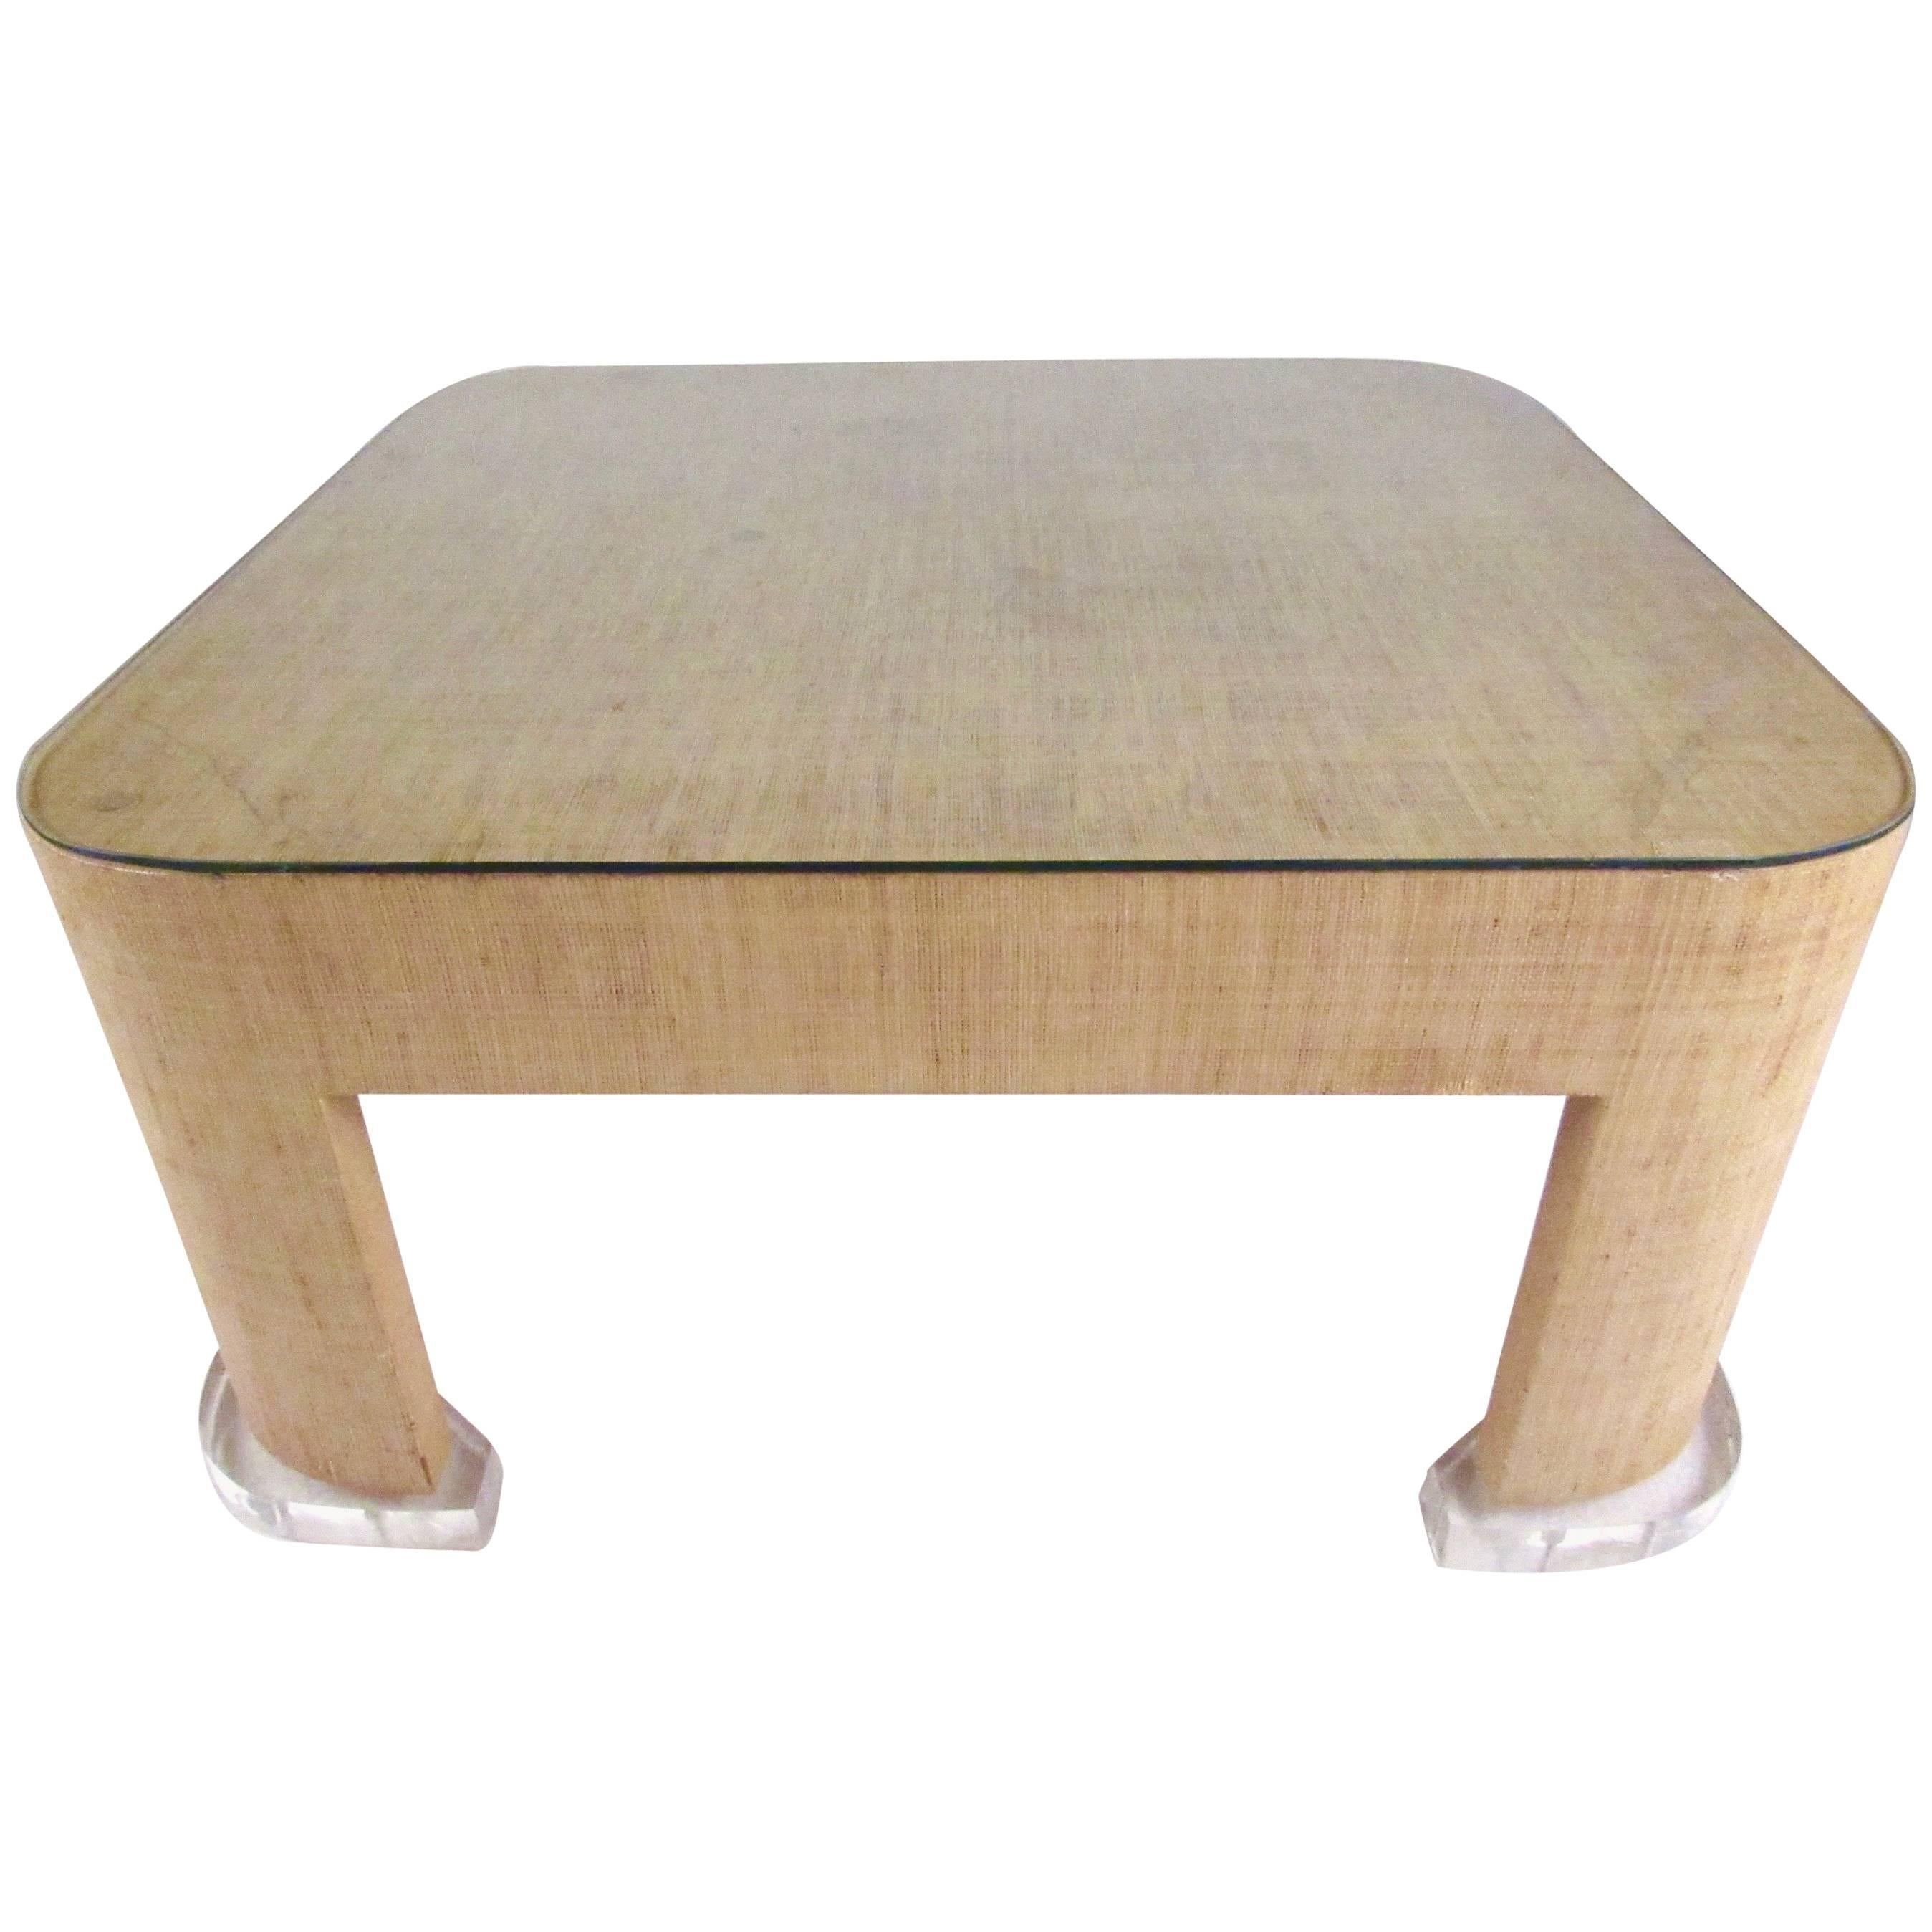 Superieur Stylish Modern Grasscloth Coffee Table In The Style Of Karl Springer For  Sale